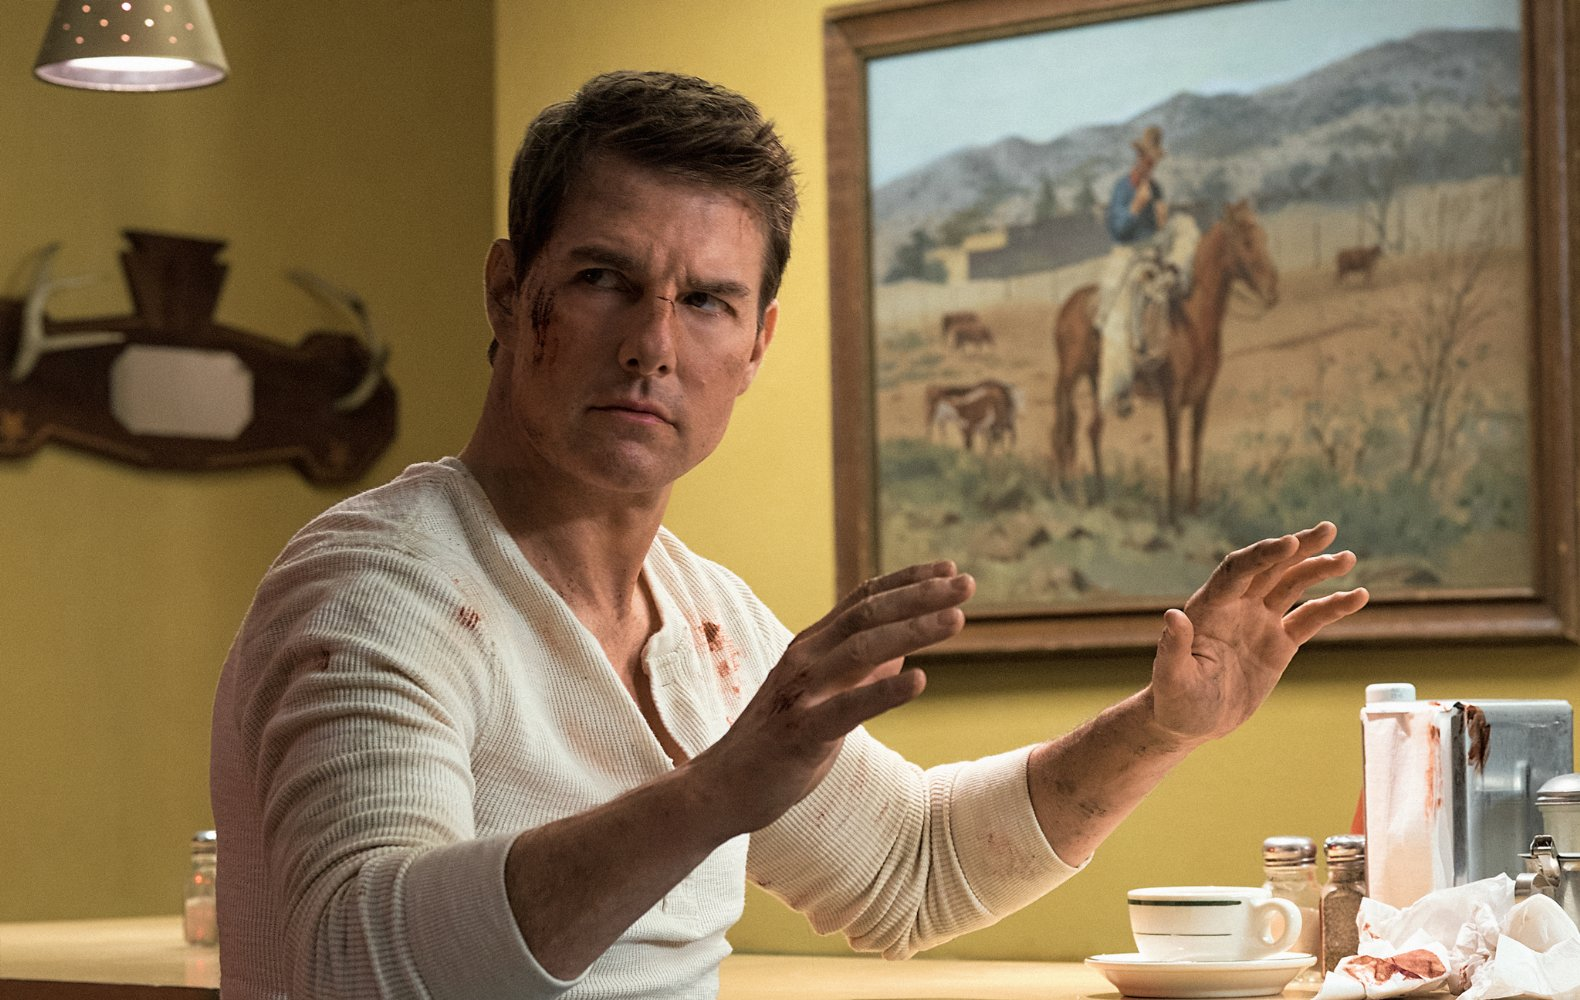 """Tom Cruise finds his """"make the ketchup bottle disappear"""" trick didn't work as well as expected."""